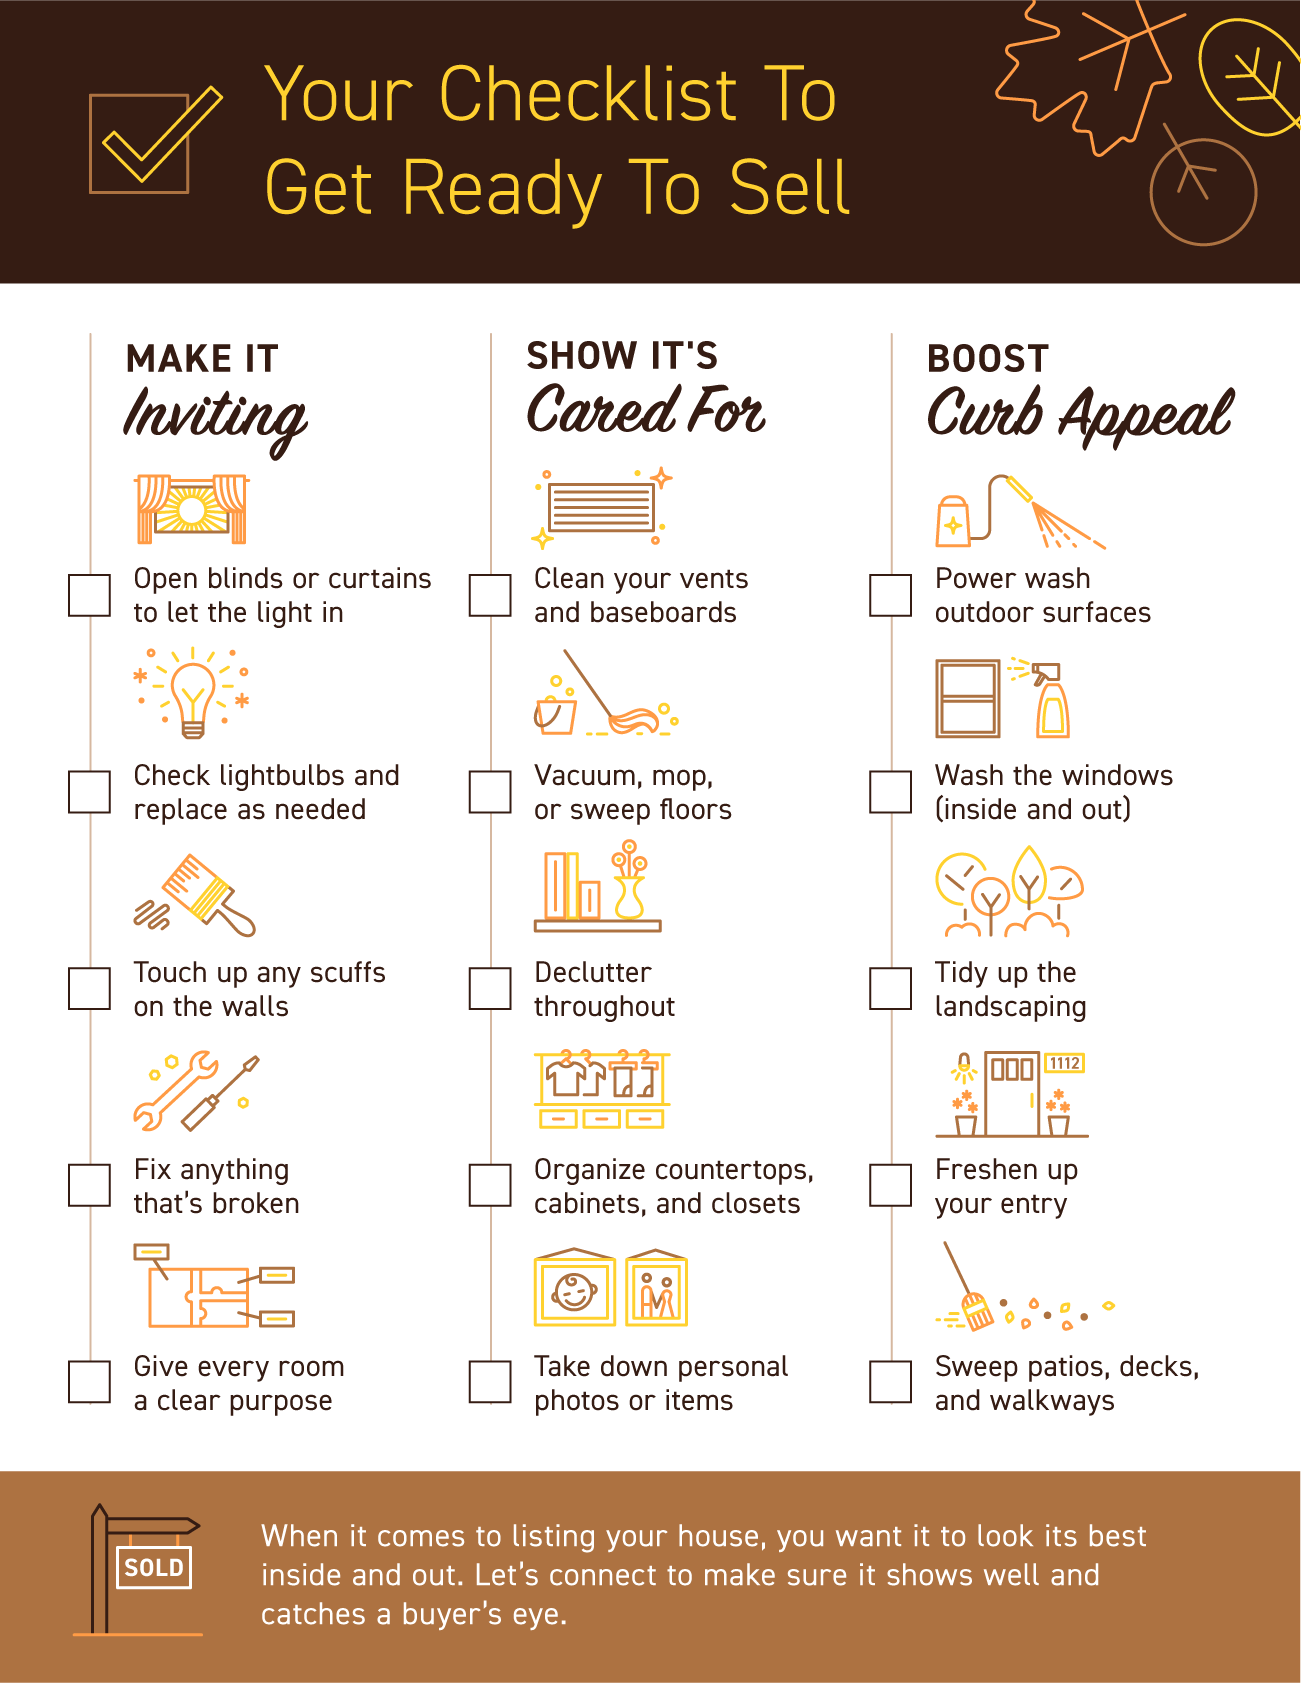 Your Checklist To Get Ready To Sell [INFOGRAPHIC] | Simplifying The Market